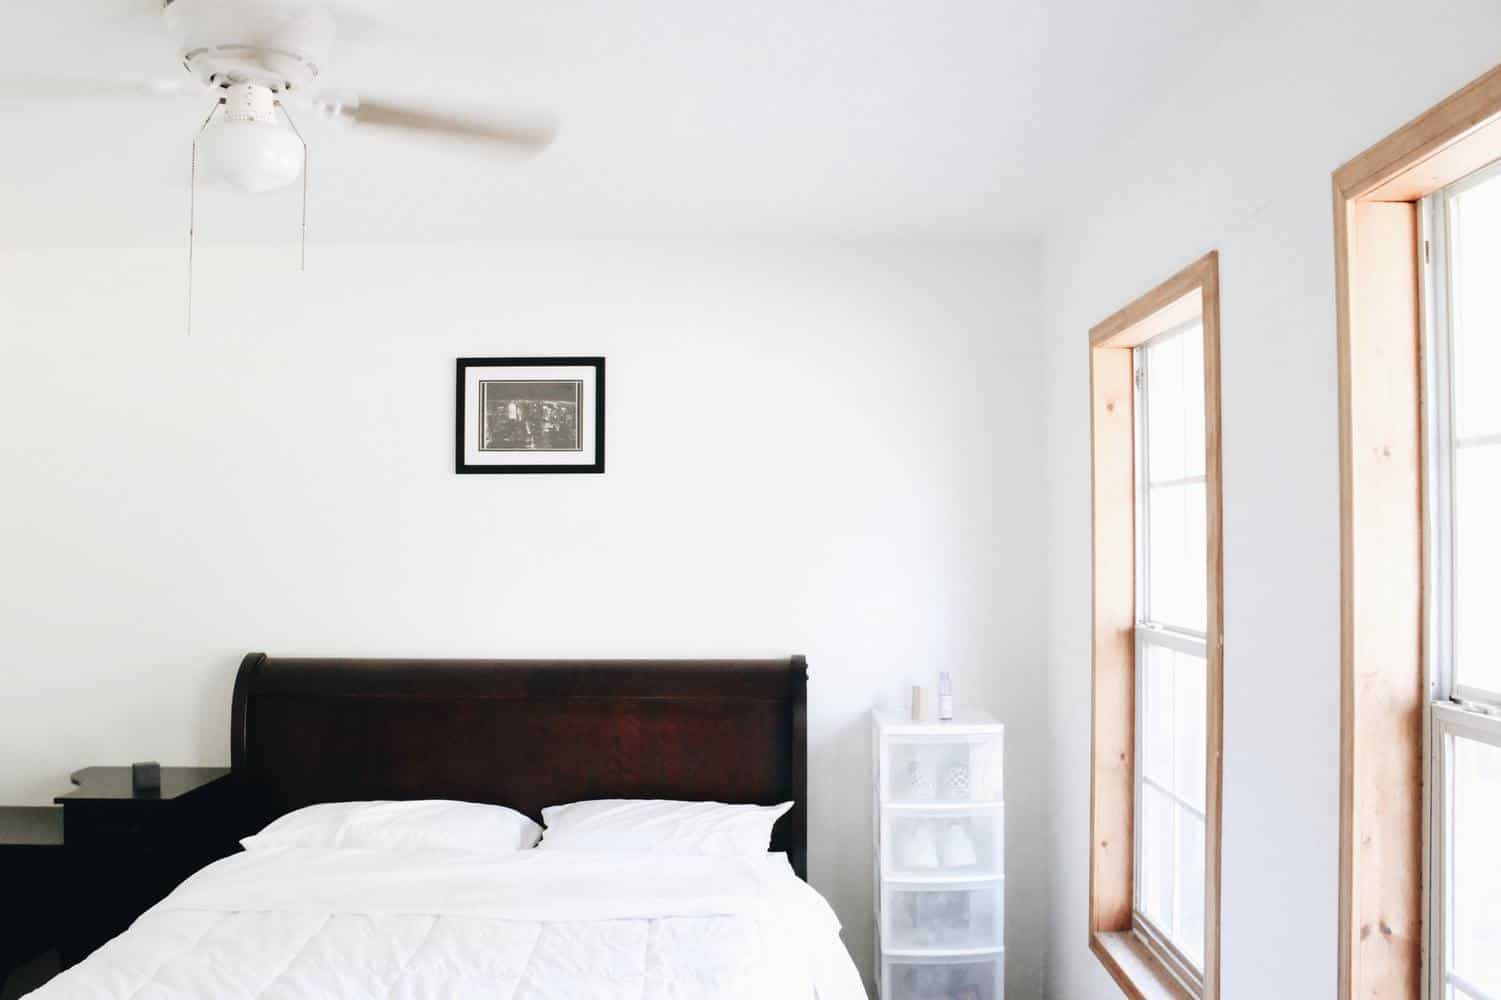 Is It Bad To Sleep With A Fan Blowing On You? That Depends...